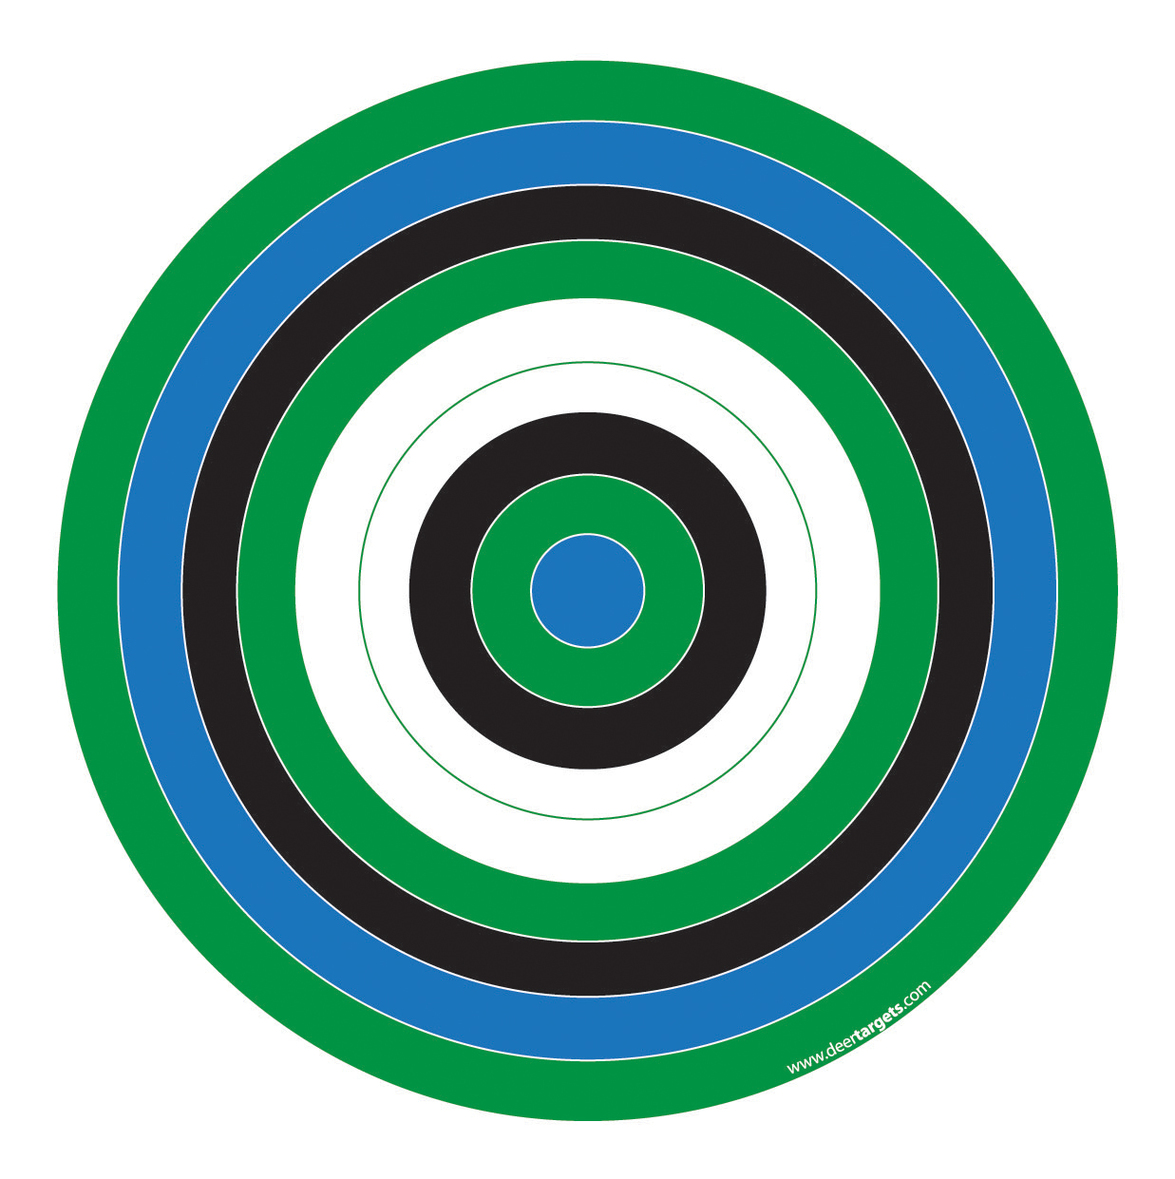 This is an image of Inventive Printable Bullseye Target